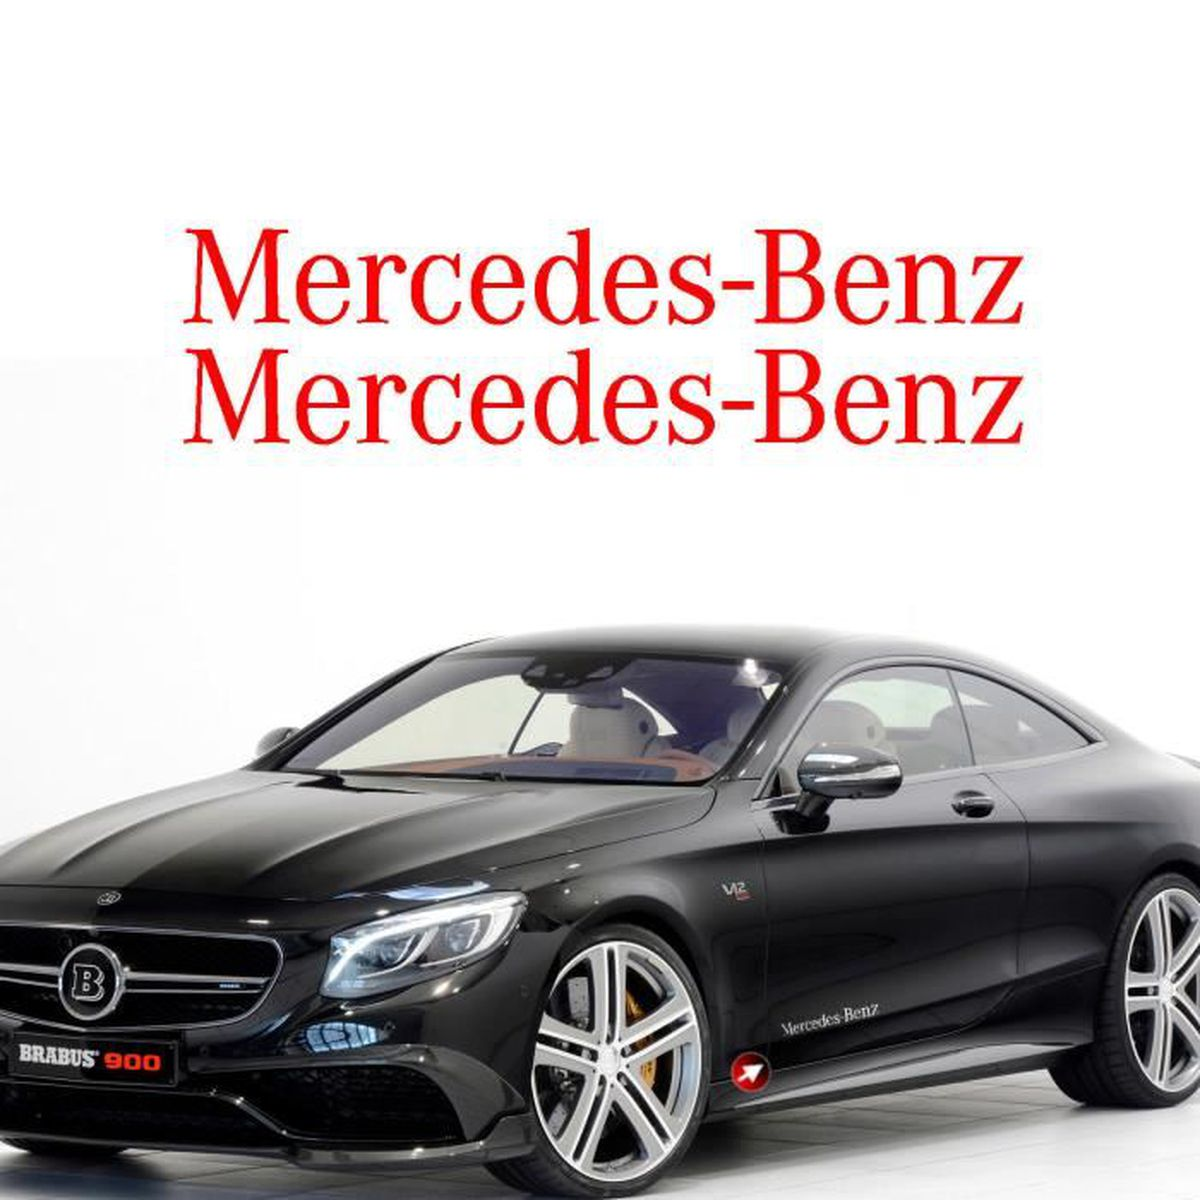 stickers mercedes achat vente stickers mercedes pas cher cdiscount. Black Bedroom Furniture Sets. Home Design Ideas